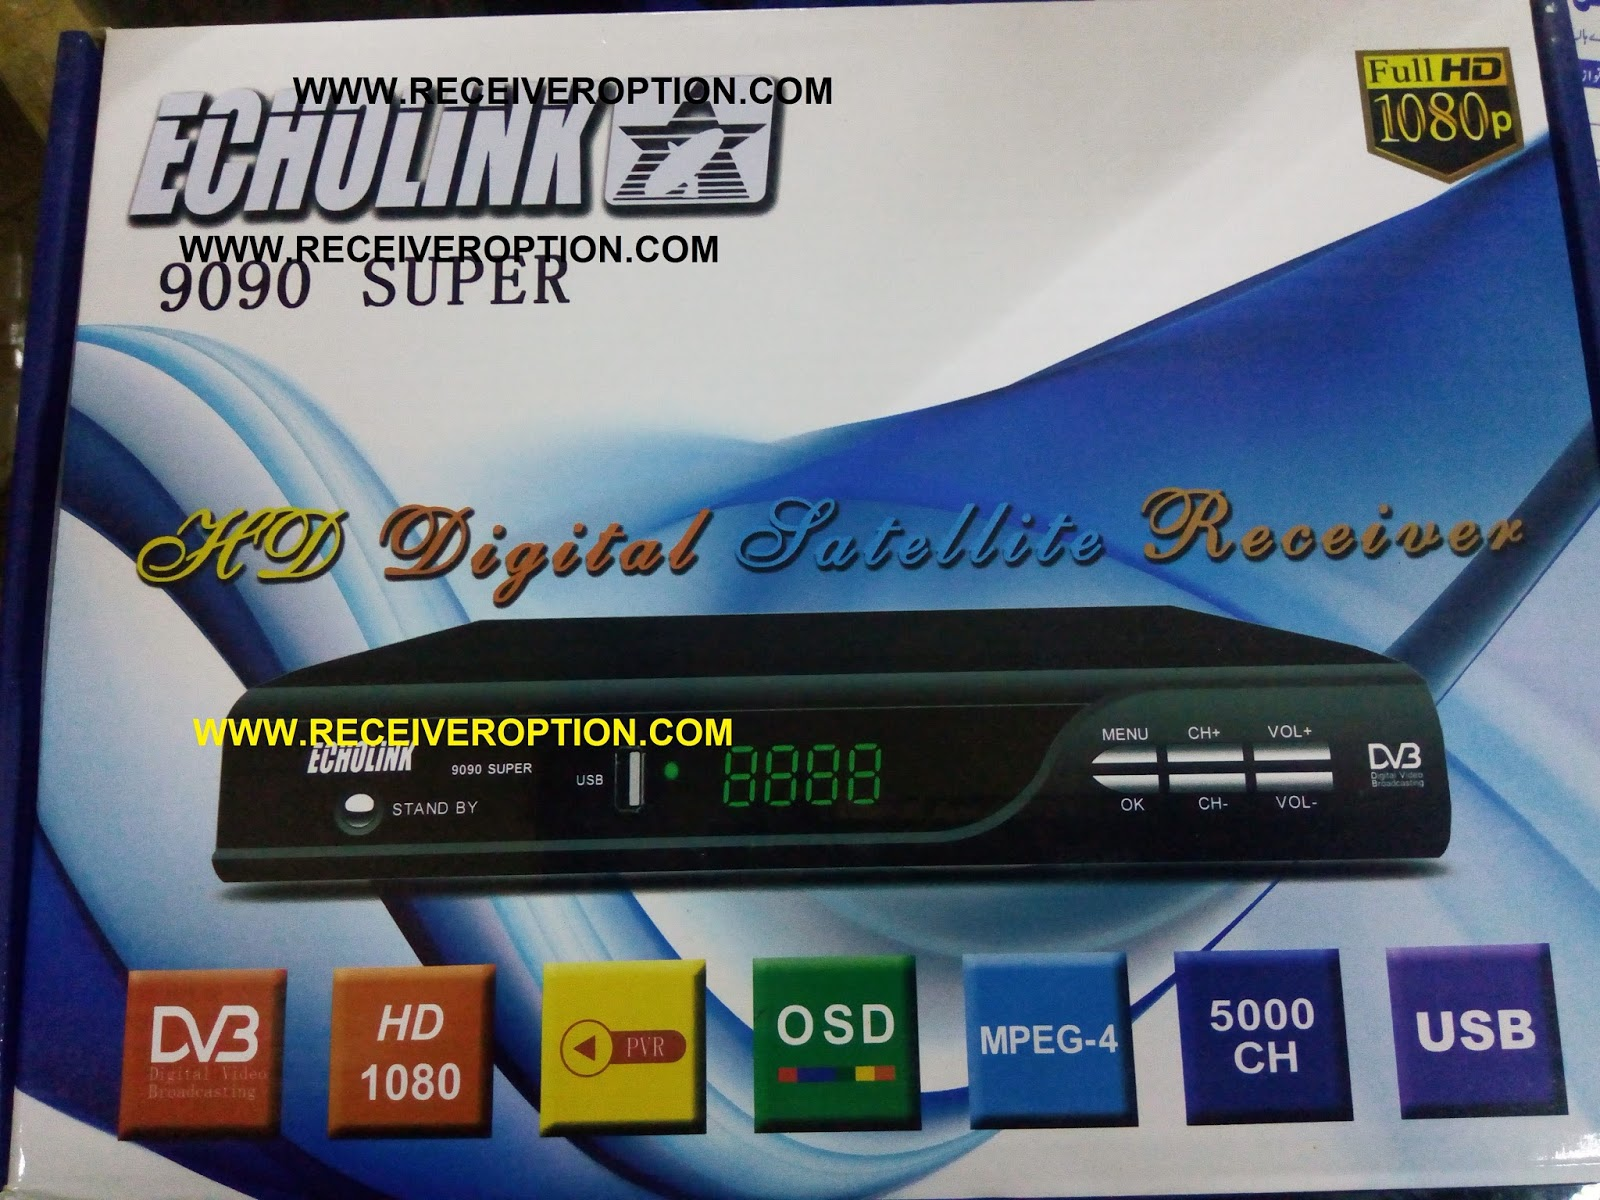 ECHOLINK 9090 SUPER HD RECEIVER AUTO ROLL POWERVU KEY SOFTWARE - HOW